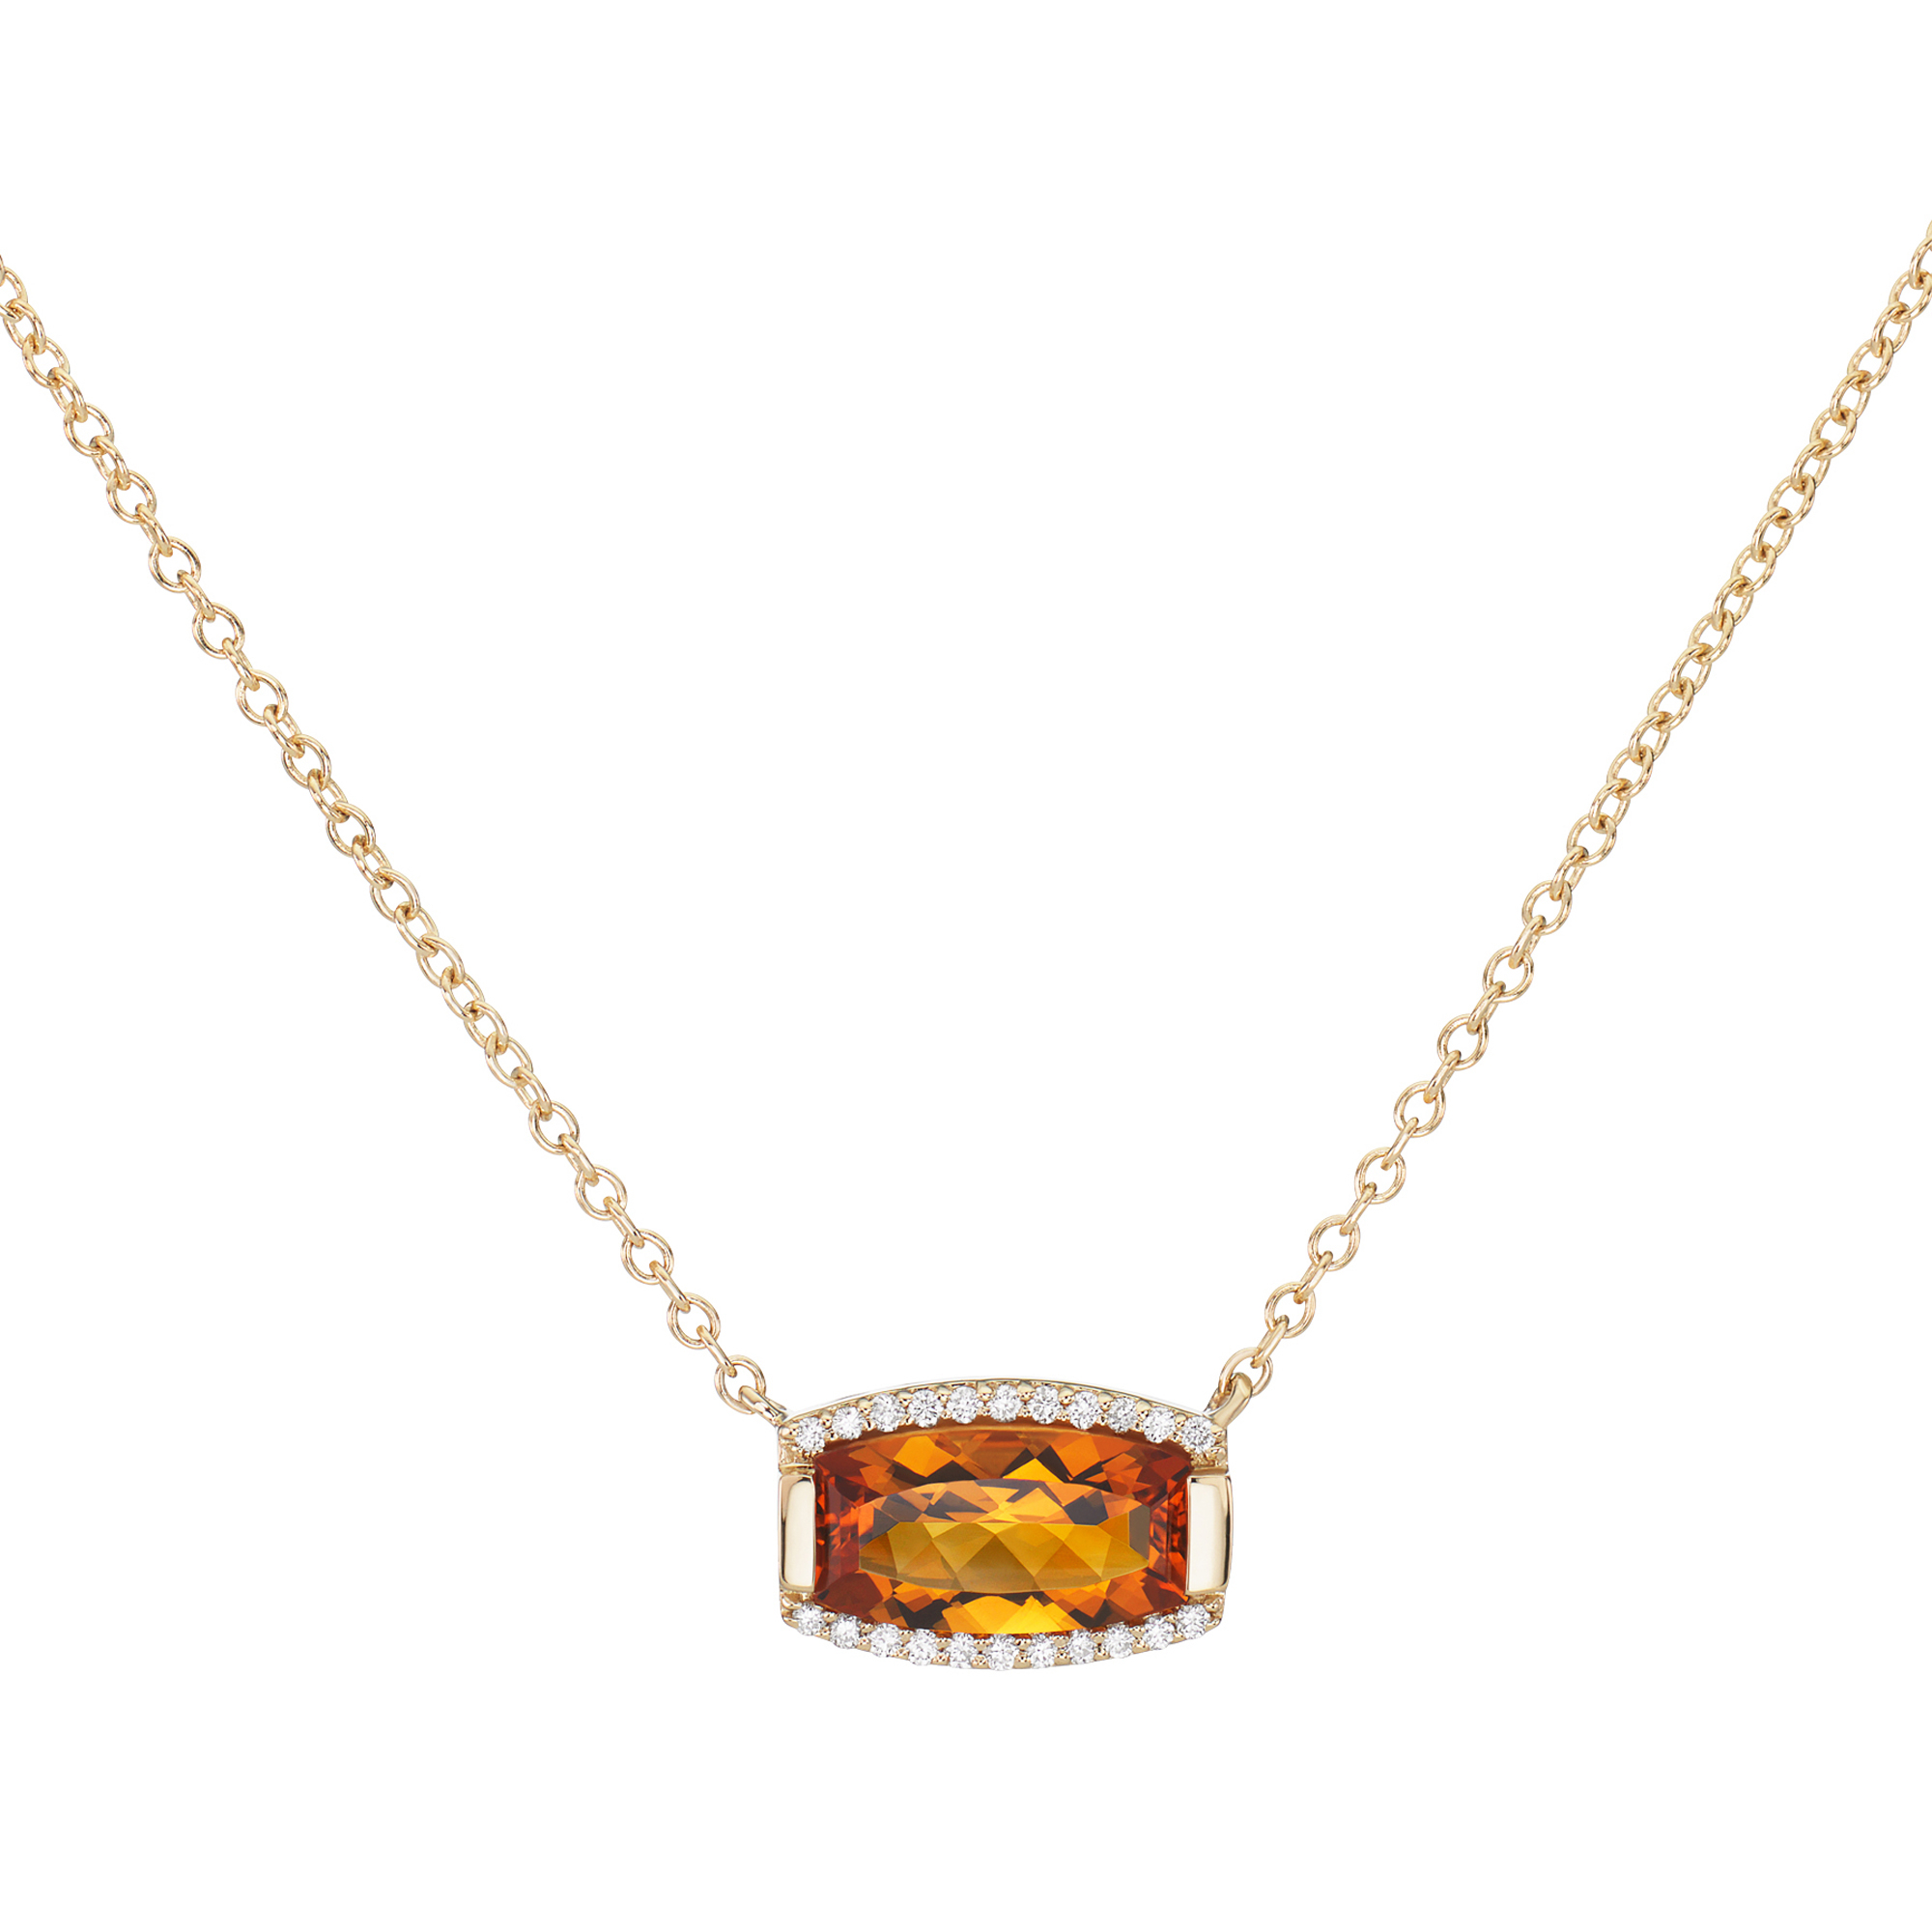 Jane Taylor Citrine & Pavé Diamond Tonneau Necklace